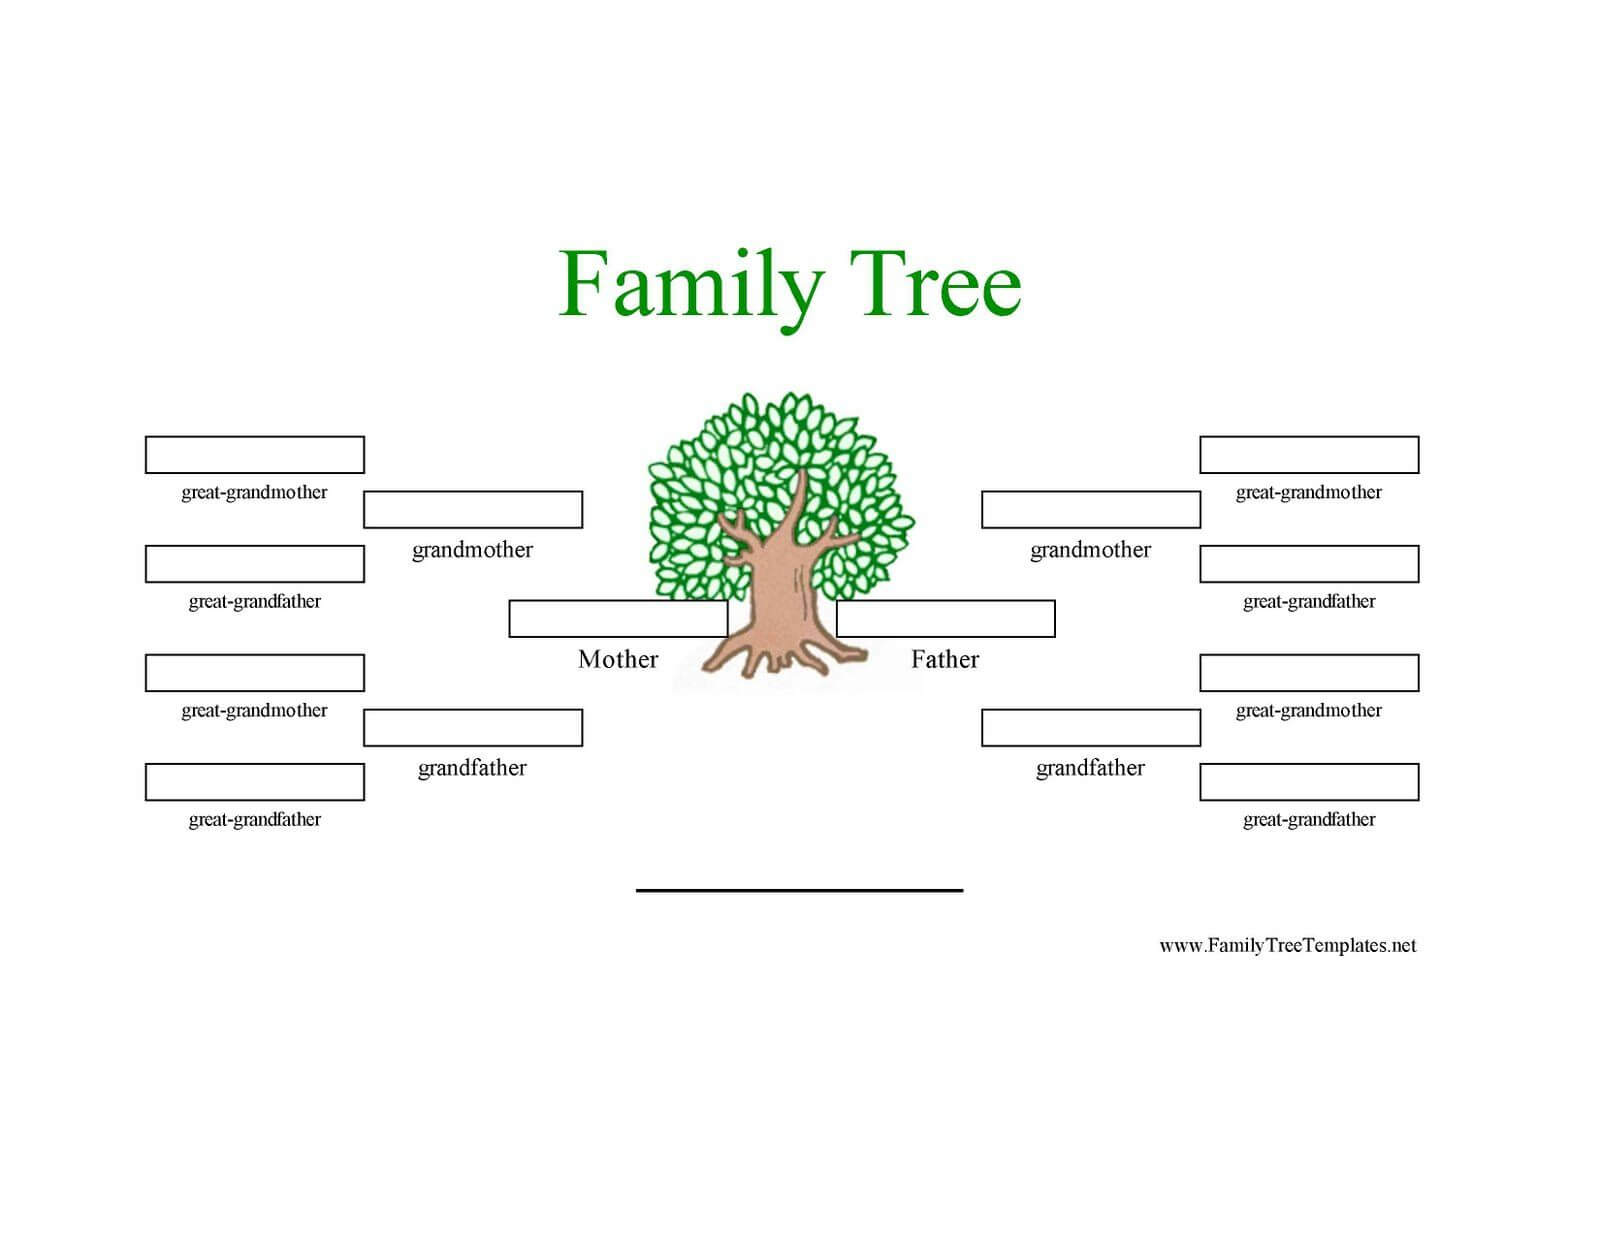 12 Generation Family Tree Sample | Generations Family Tree With Regard To Blank Family Tree Template 3 Generations